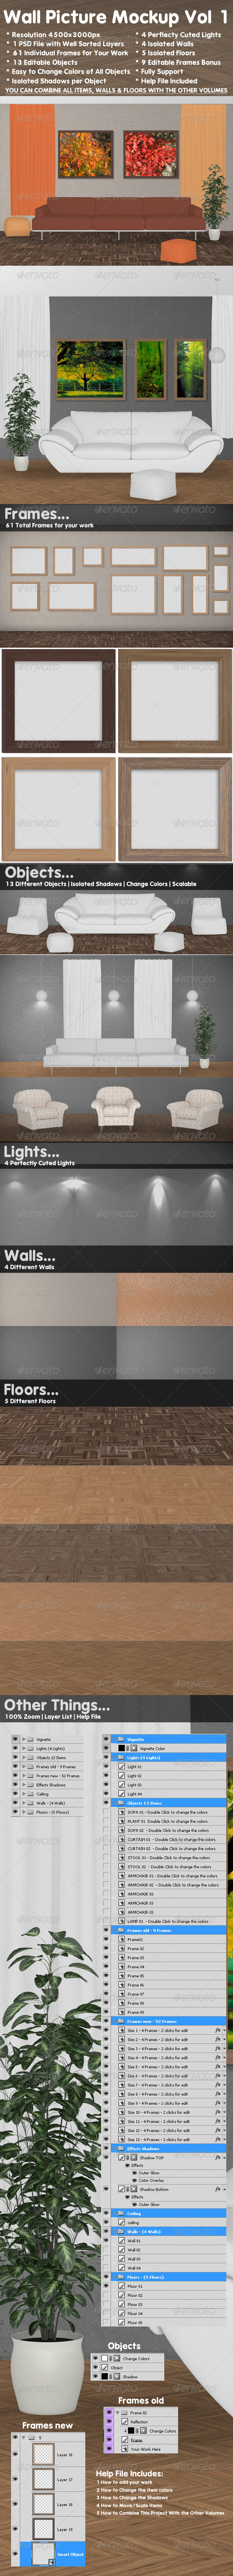 Wall Picture Mock-Up vol 1 - Miscellaneous Displays